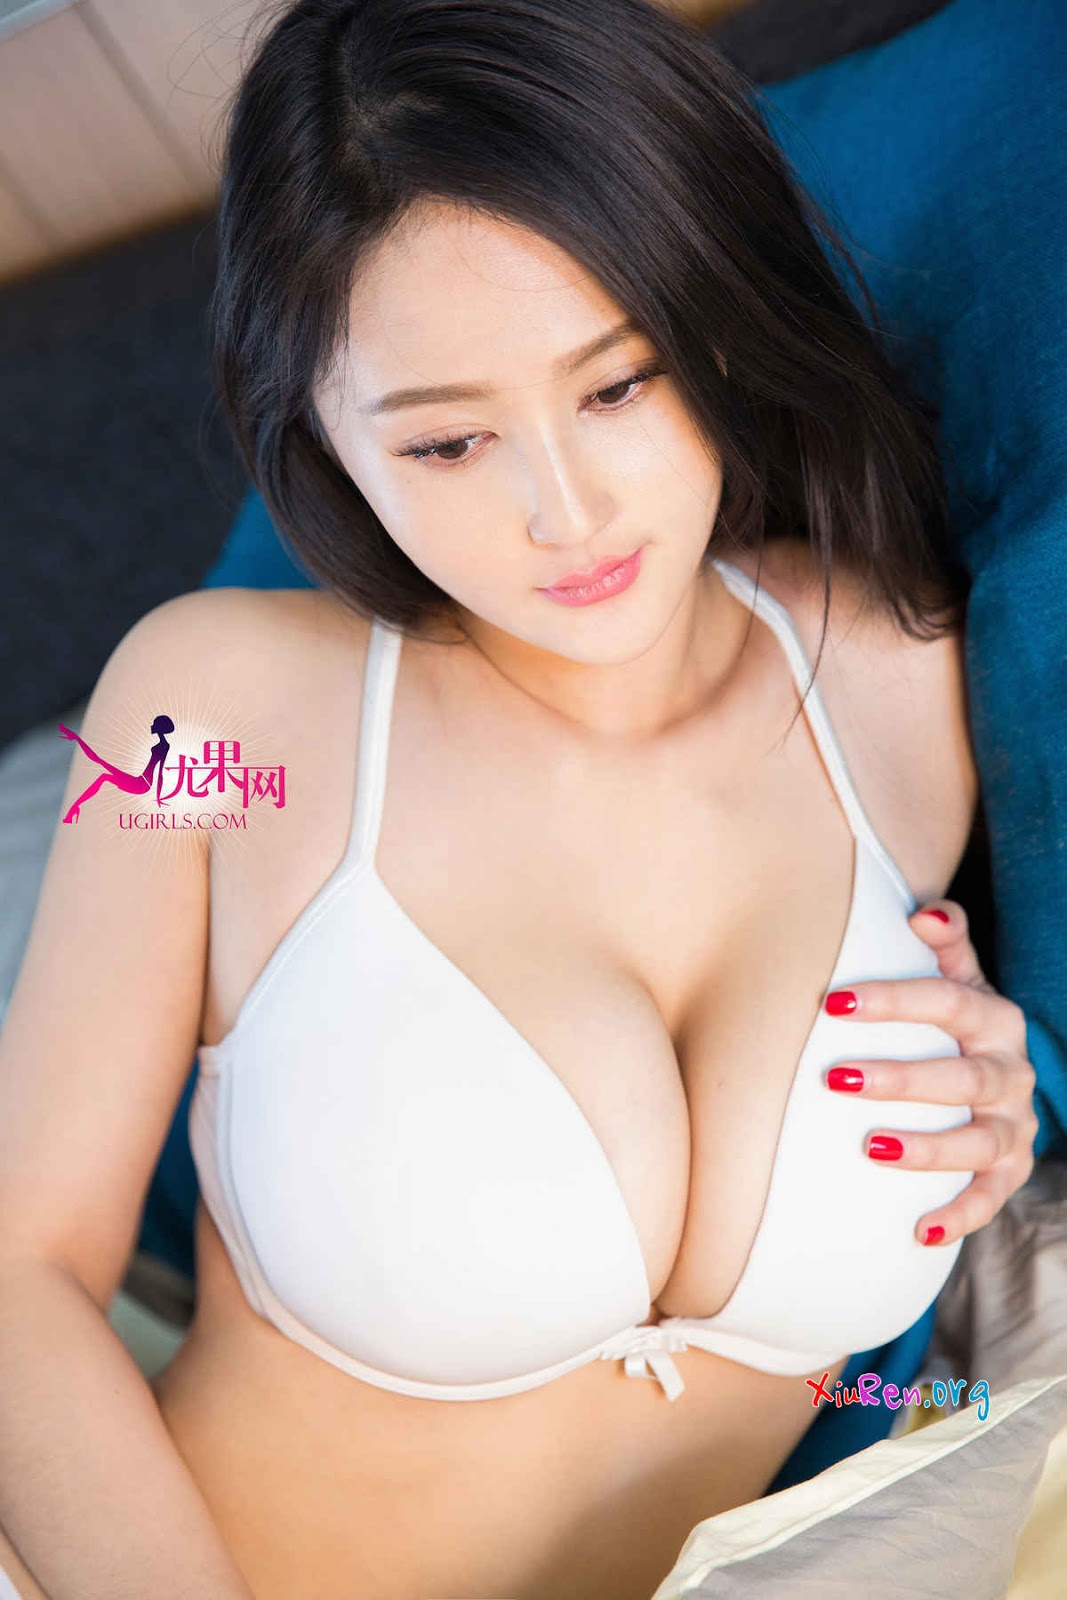 Beauty china nude archive photos love